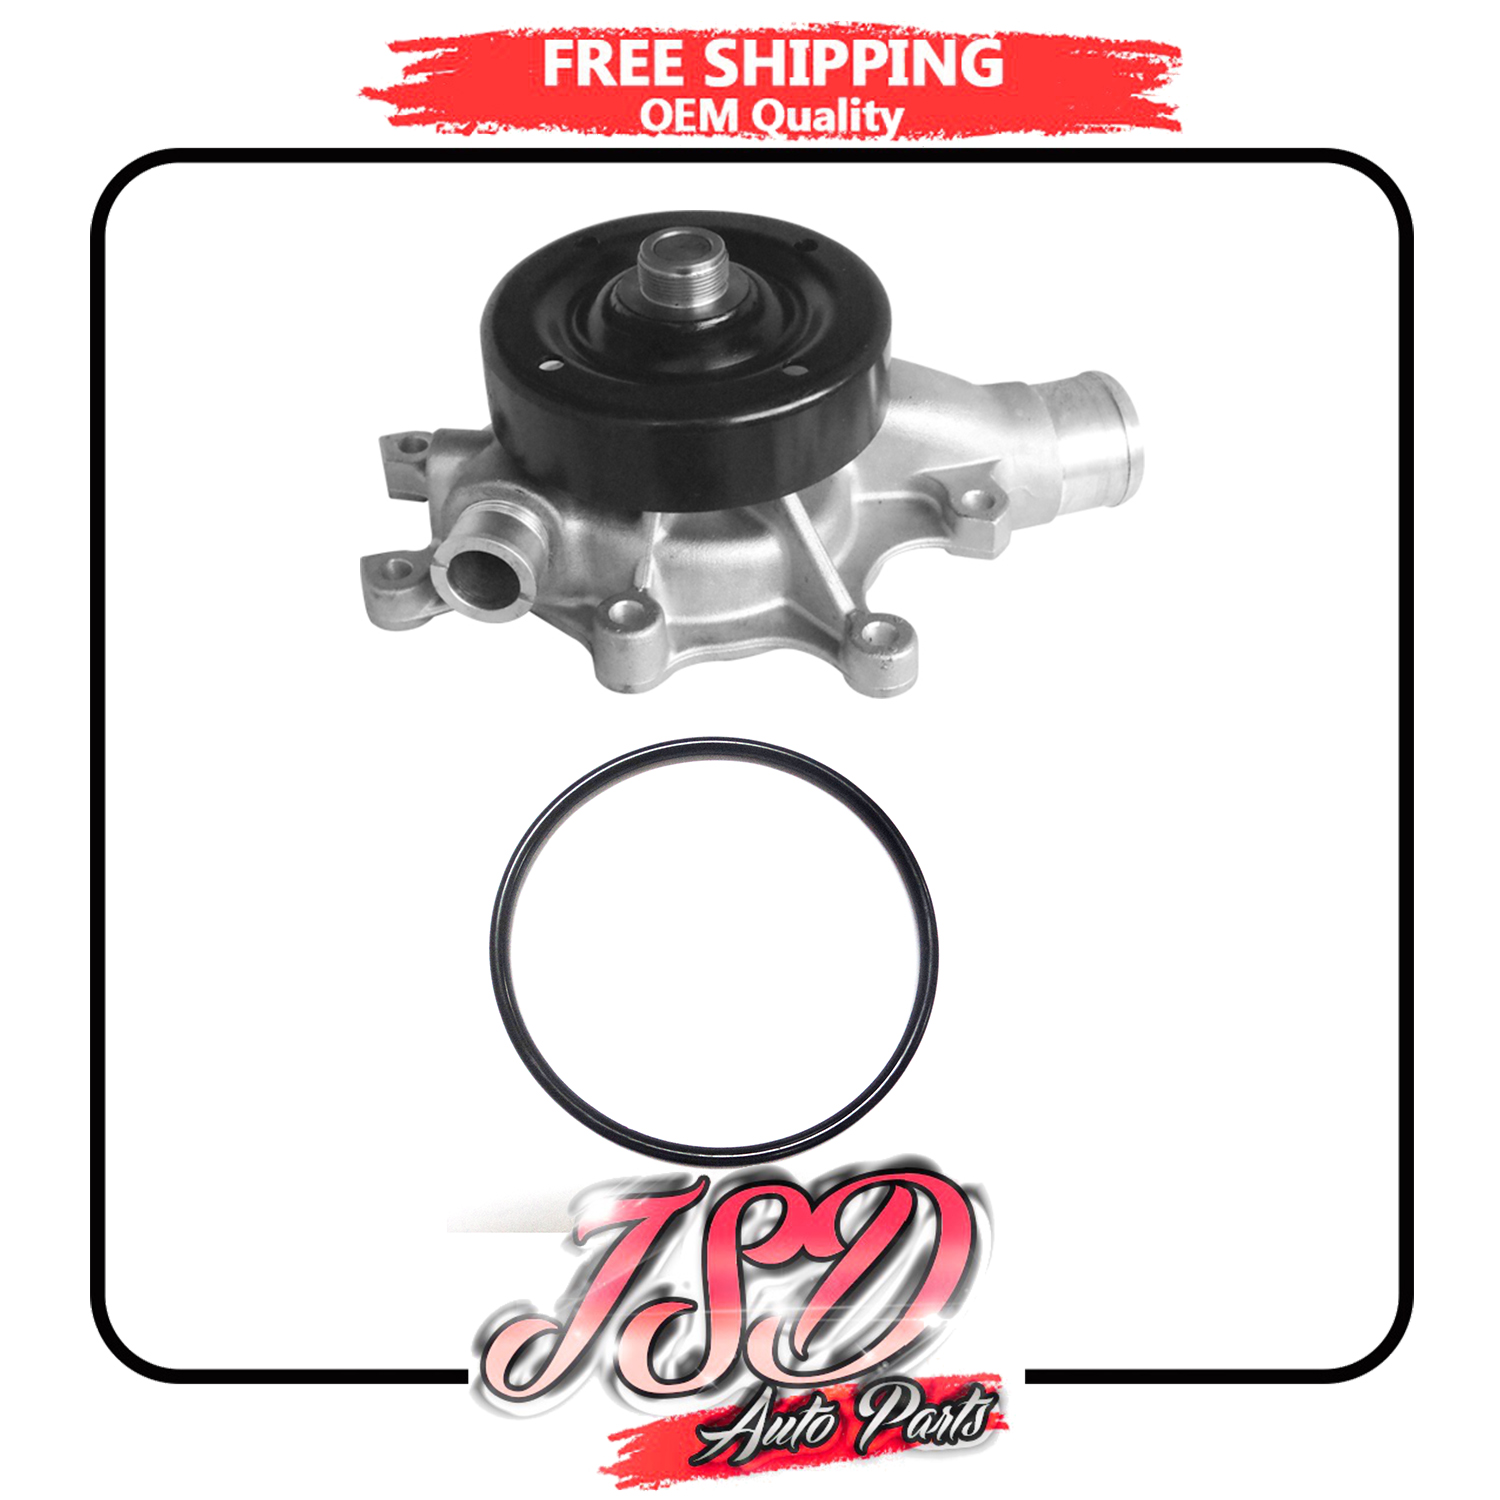 New Water Pump W// Gasket For Dodge Ram 2500 Ram 3500 1994-2002 8.0L V10 AW7169